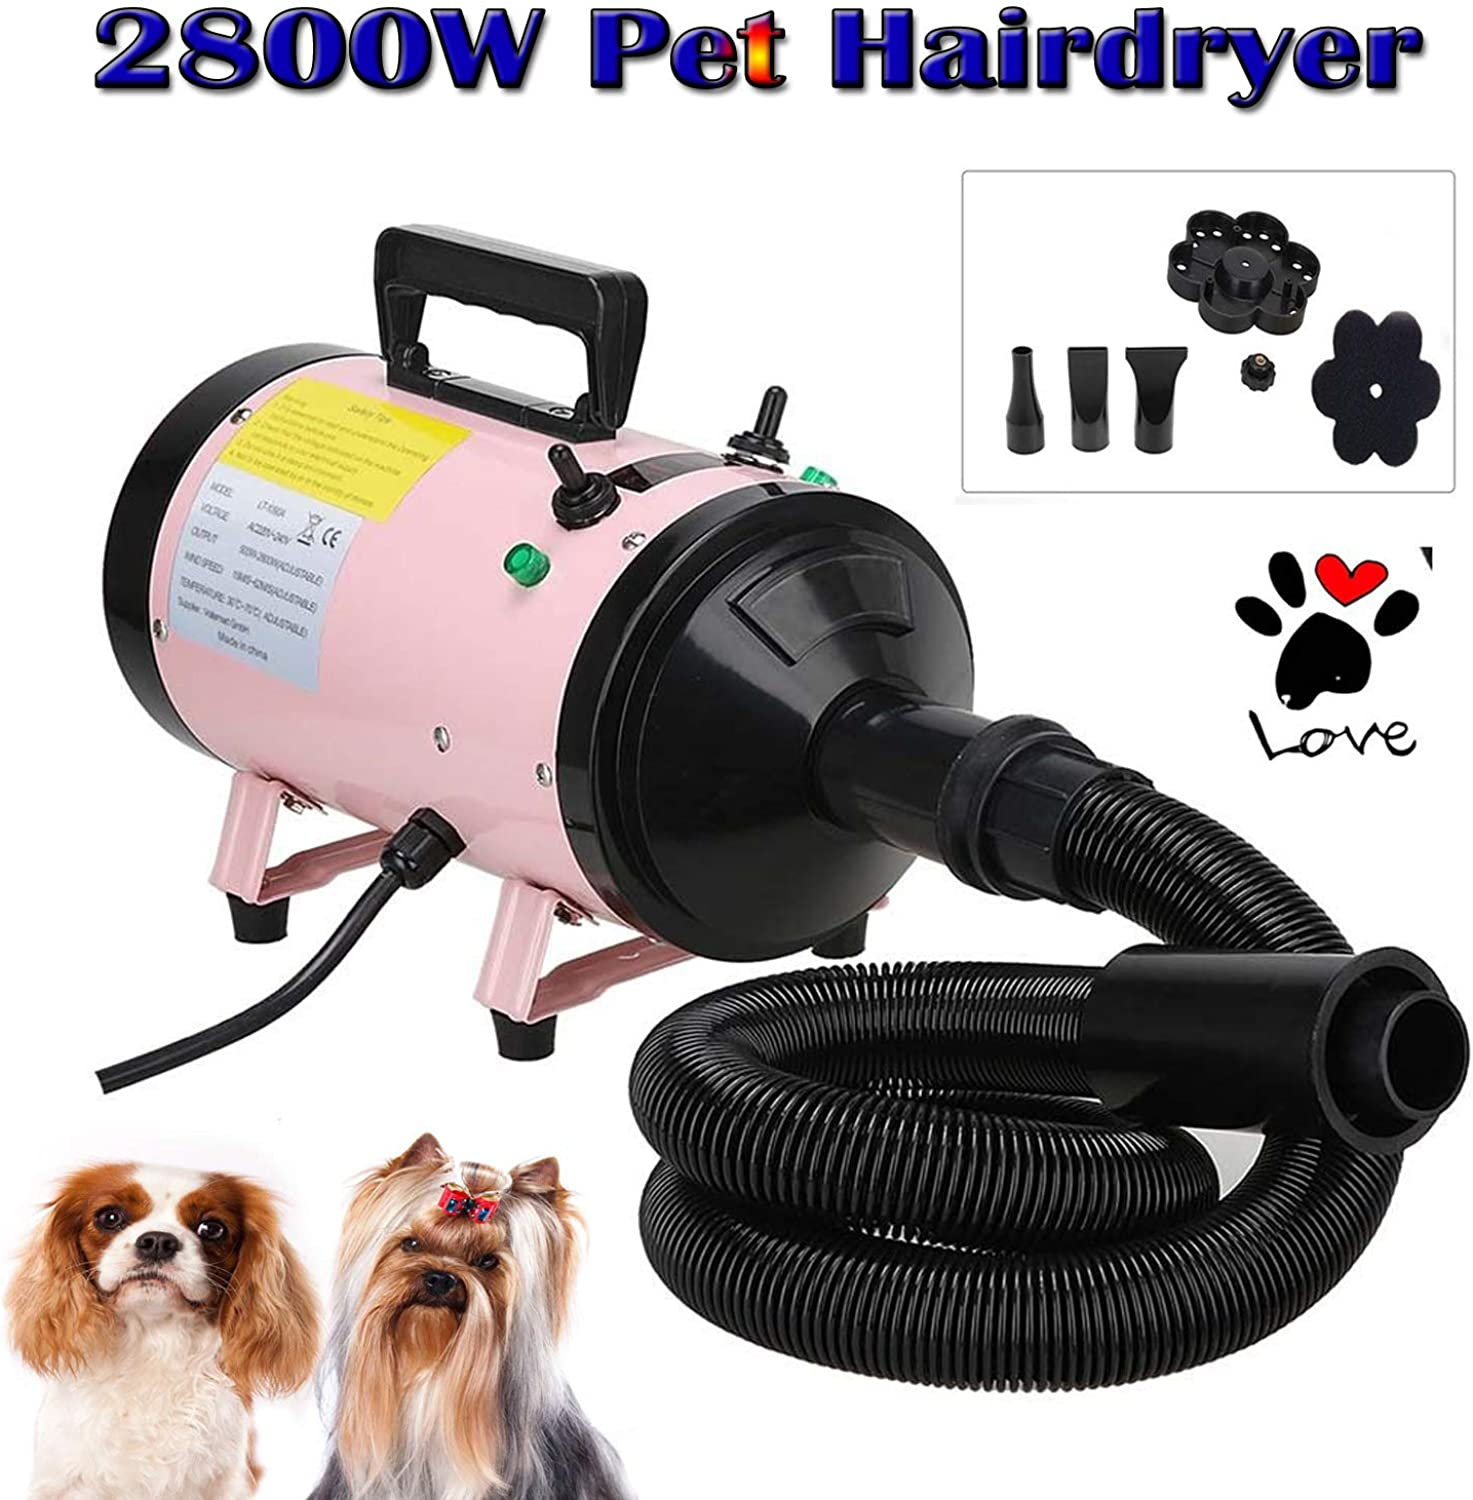 2800W Pet Grooming Hair Dryer Professional High Velocity Dog Cat Hairdryers Low Noise Dryer Blaster Fur Blower with 2 Speed Adjustable(Pet Supplies, Pink)